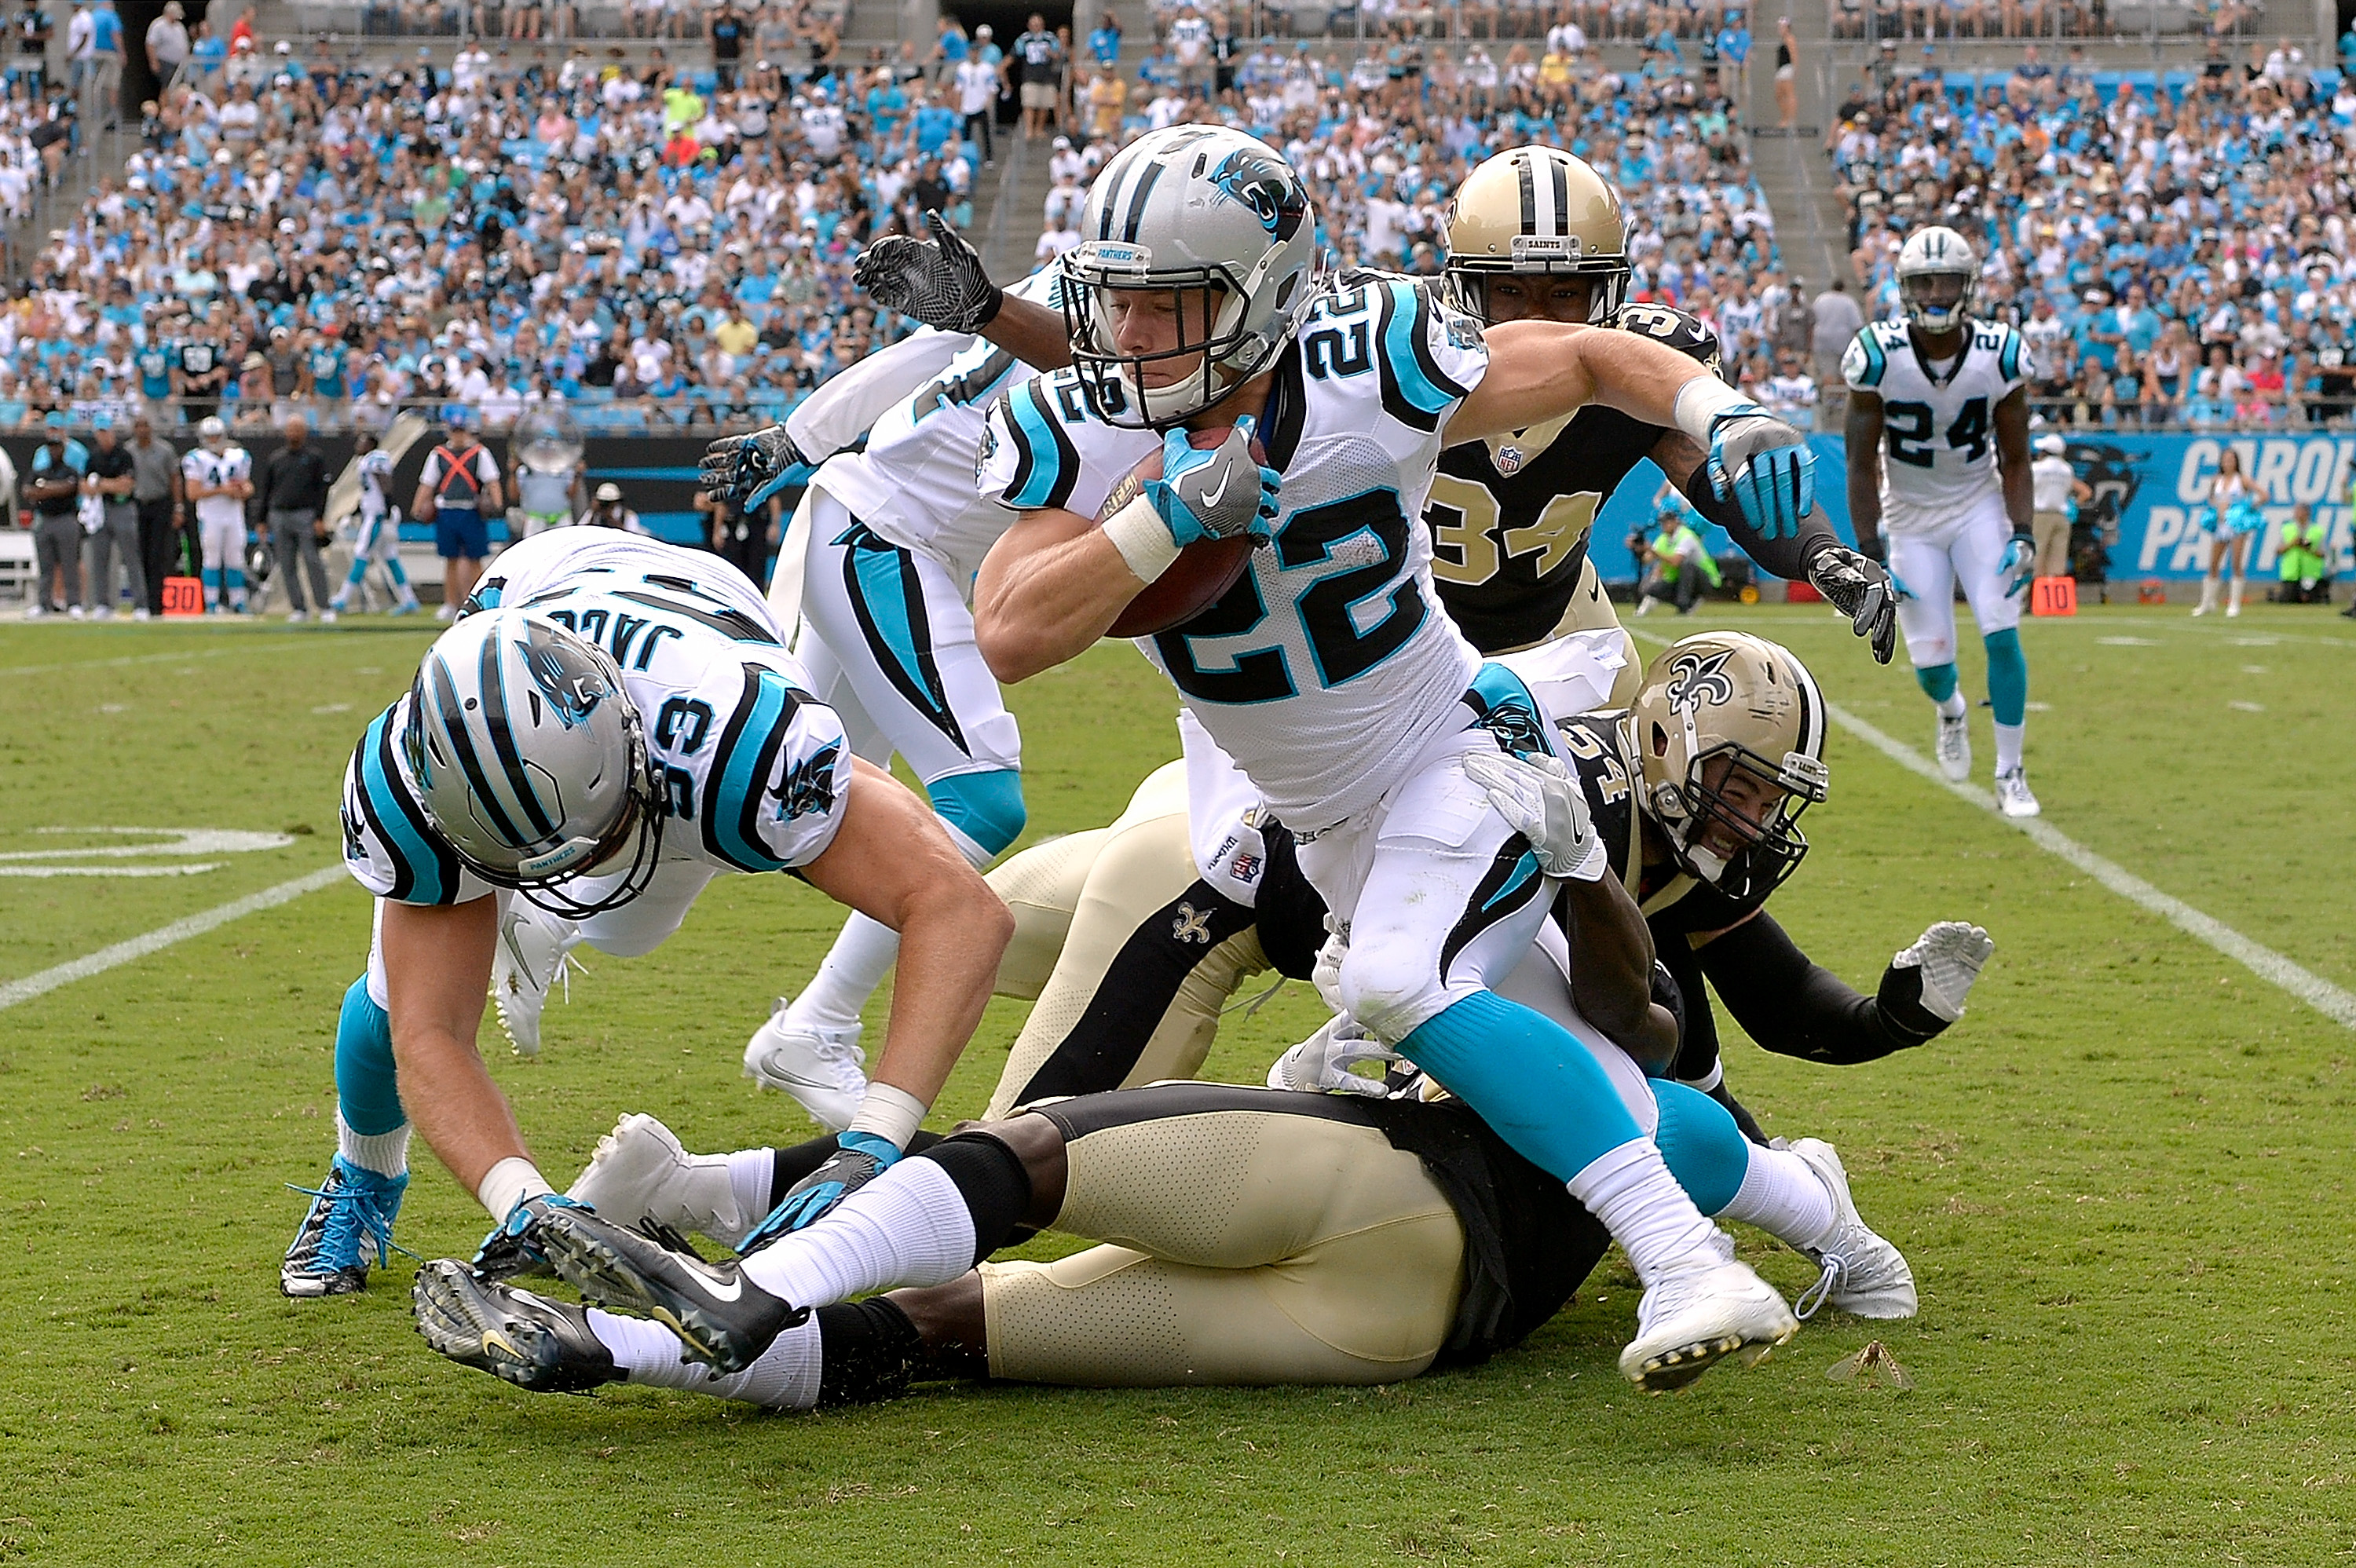 Saints march into divisional round with win over Panthers